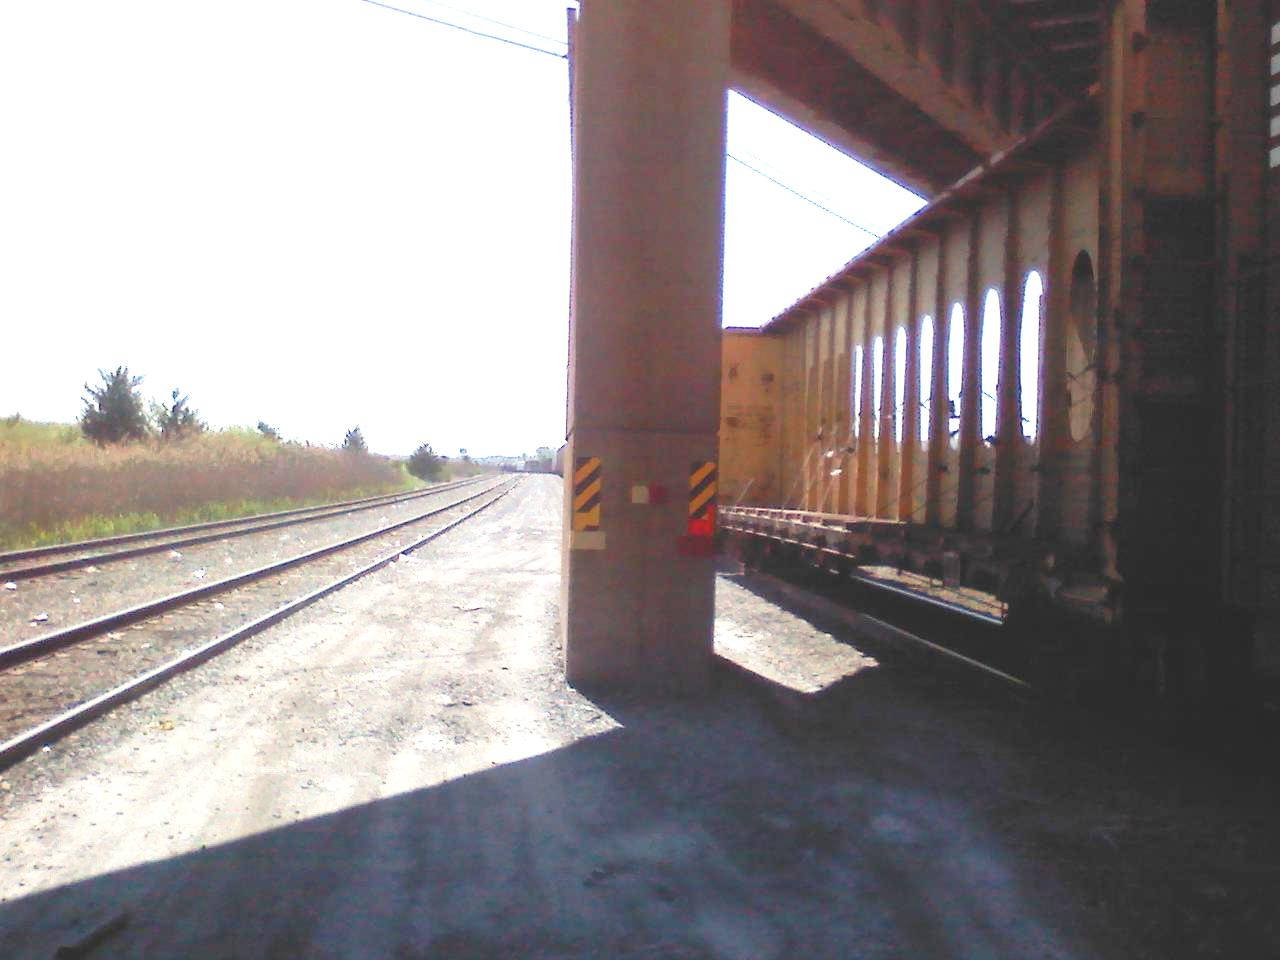 dangerous work site leads to injury and railroad lawsuit